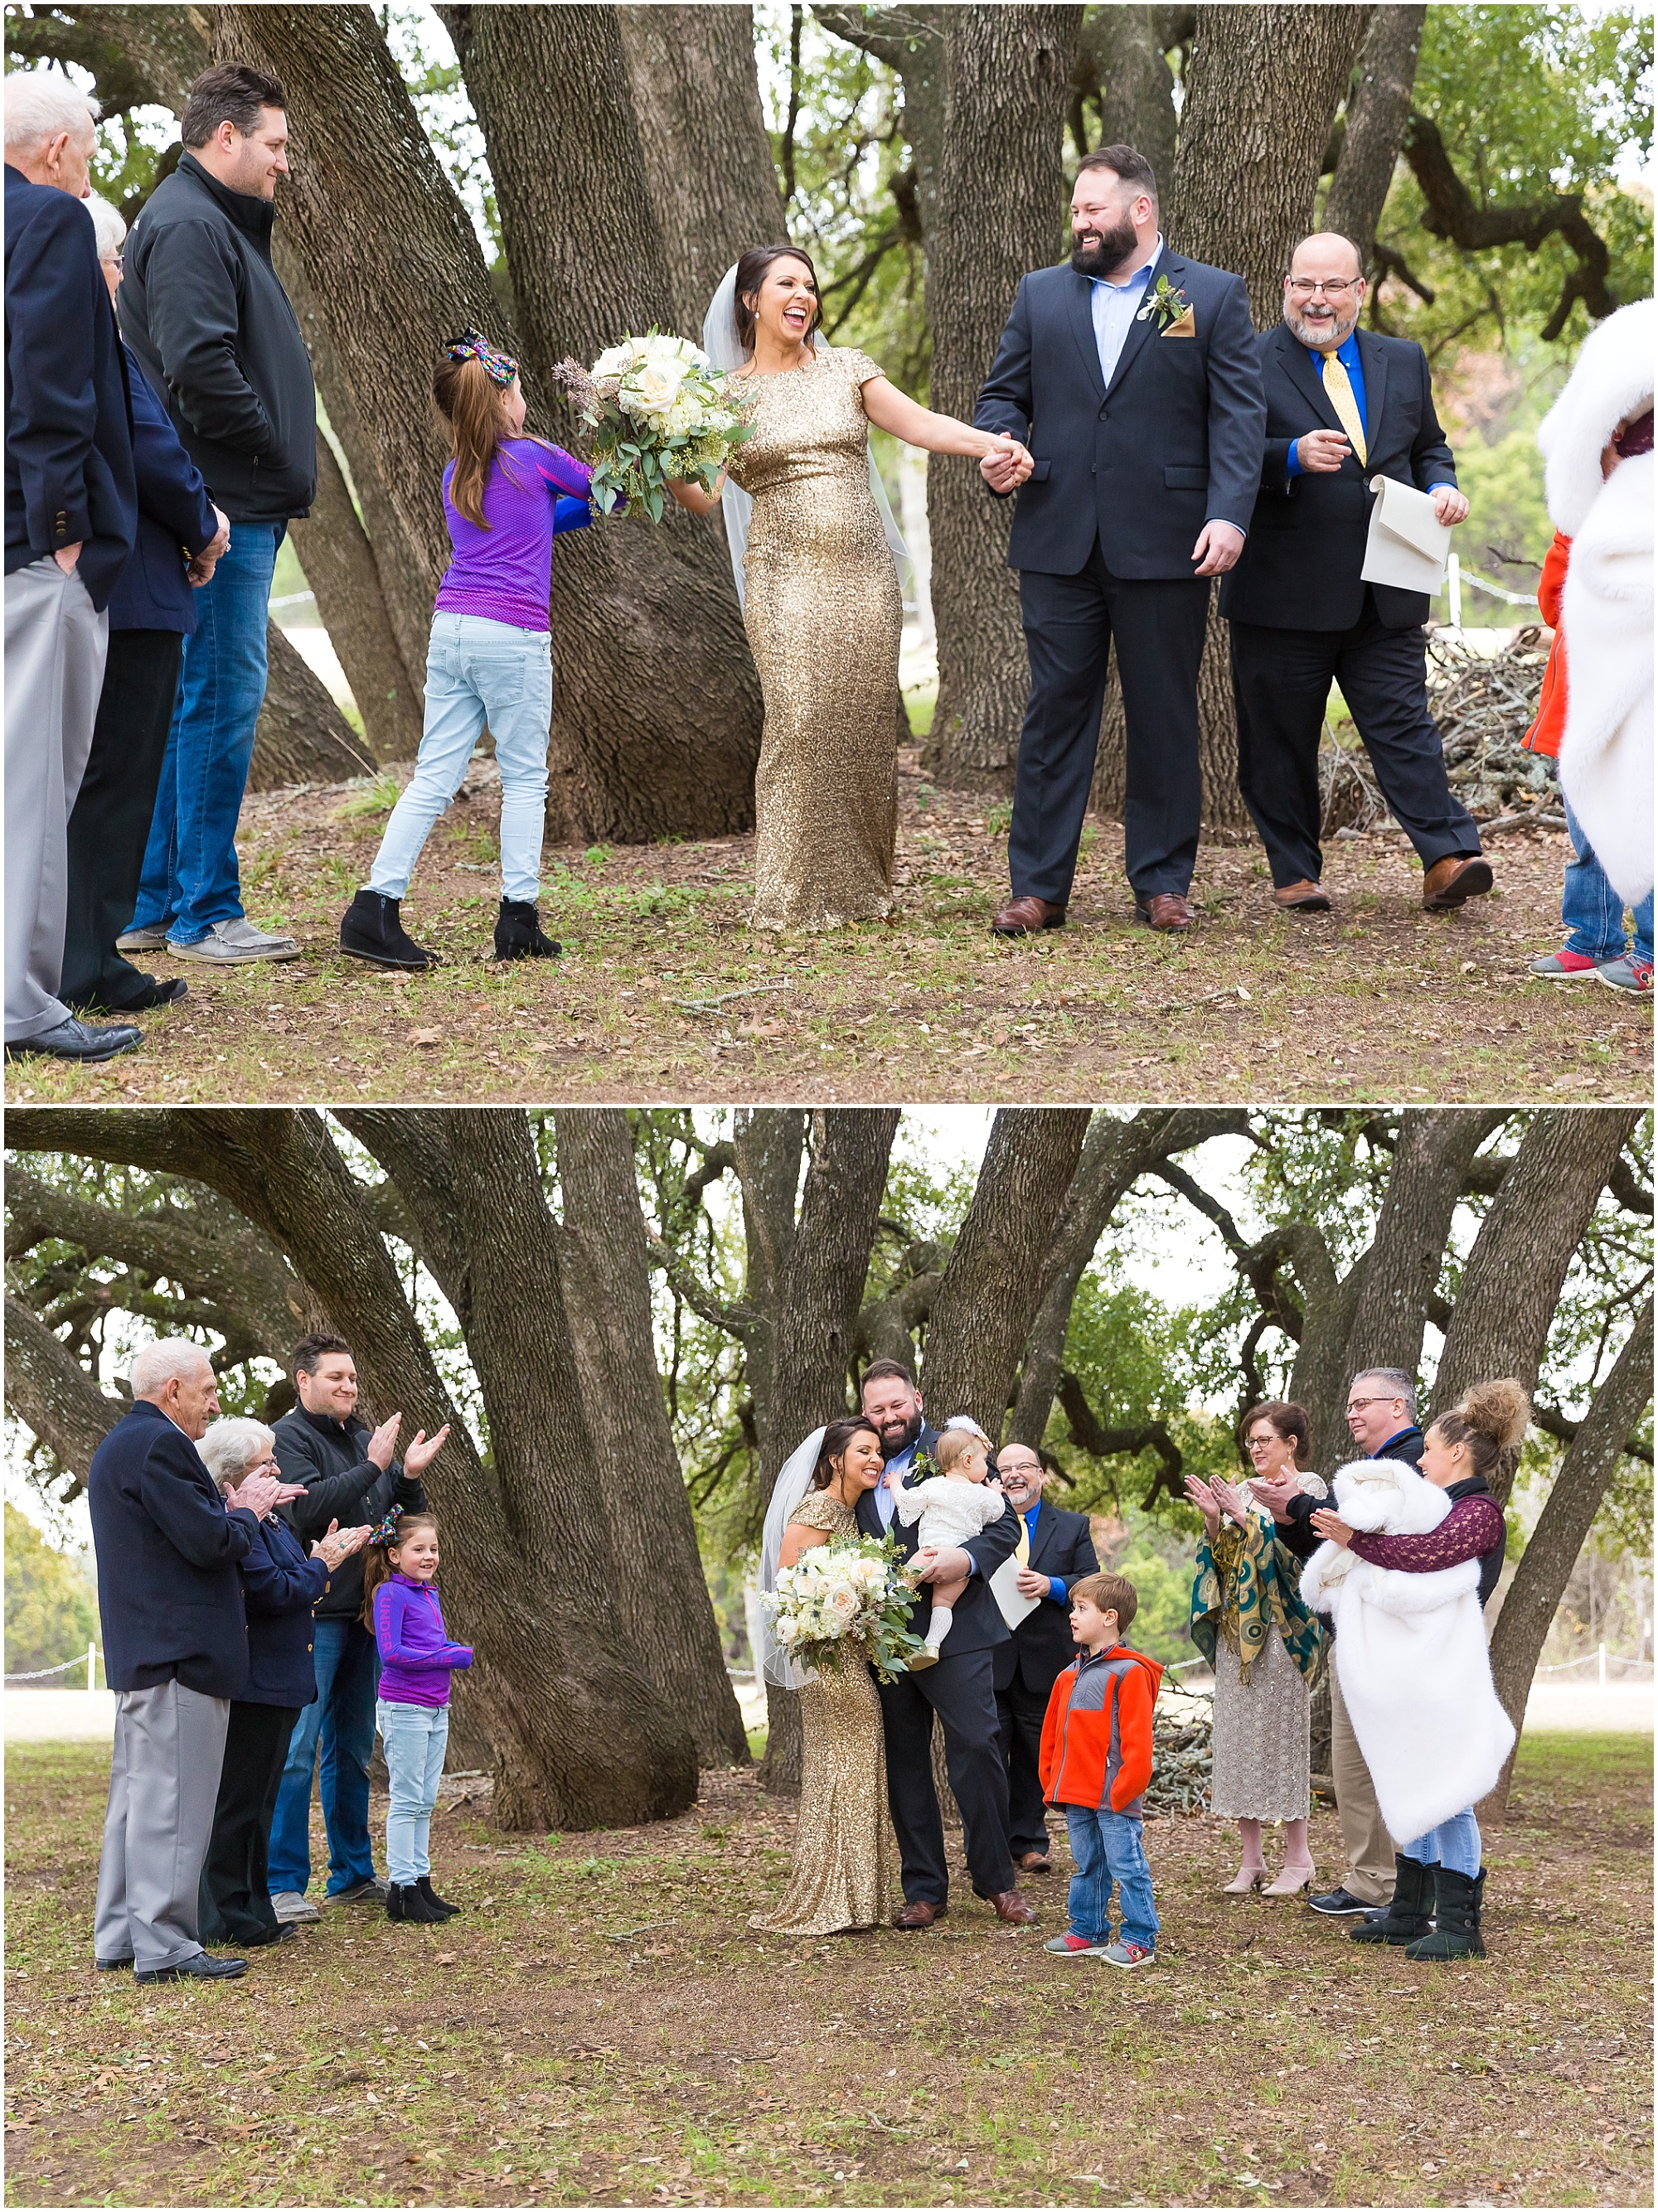 Winter-Elopement-Waco-Texas_0016.jpg